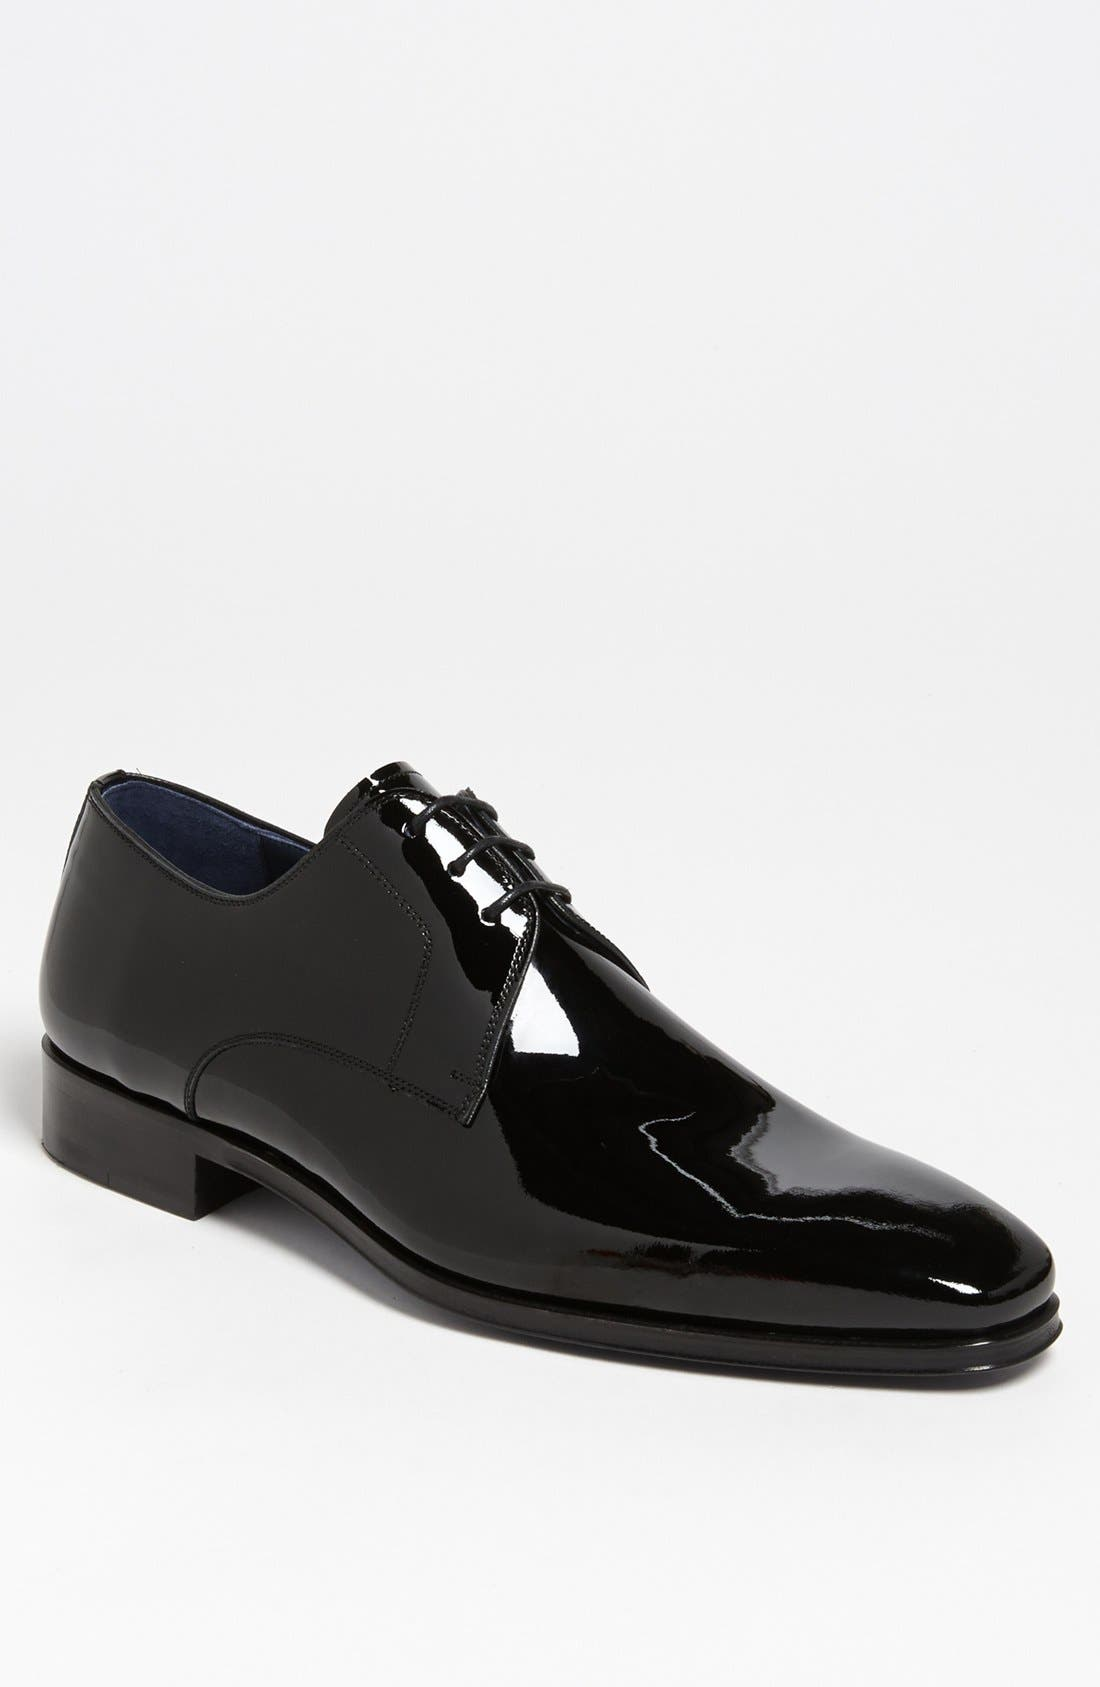 Alternate Image 1 Selected - Magnanni 'Dante' Plain Toe Derby